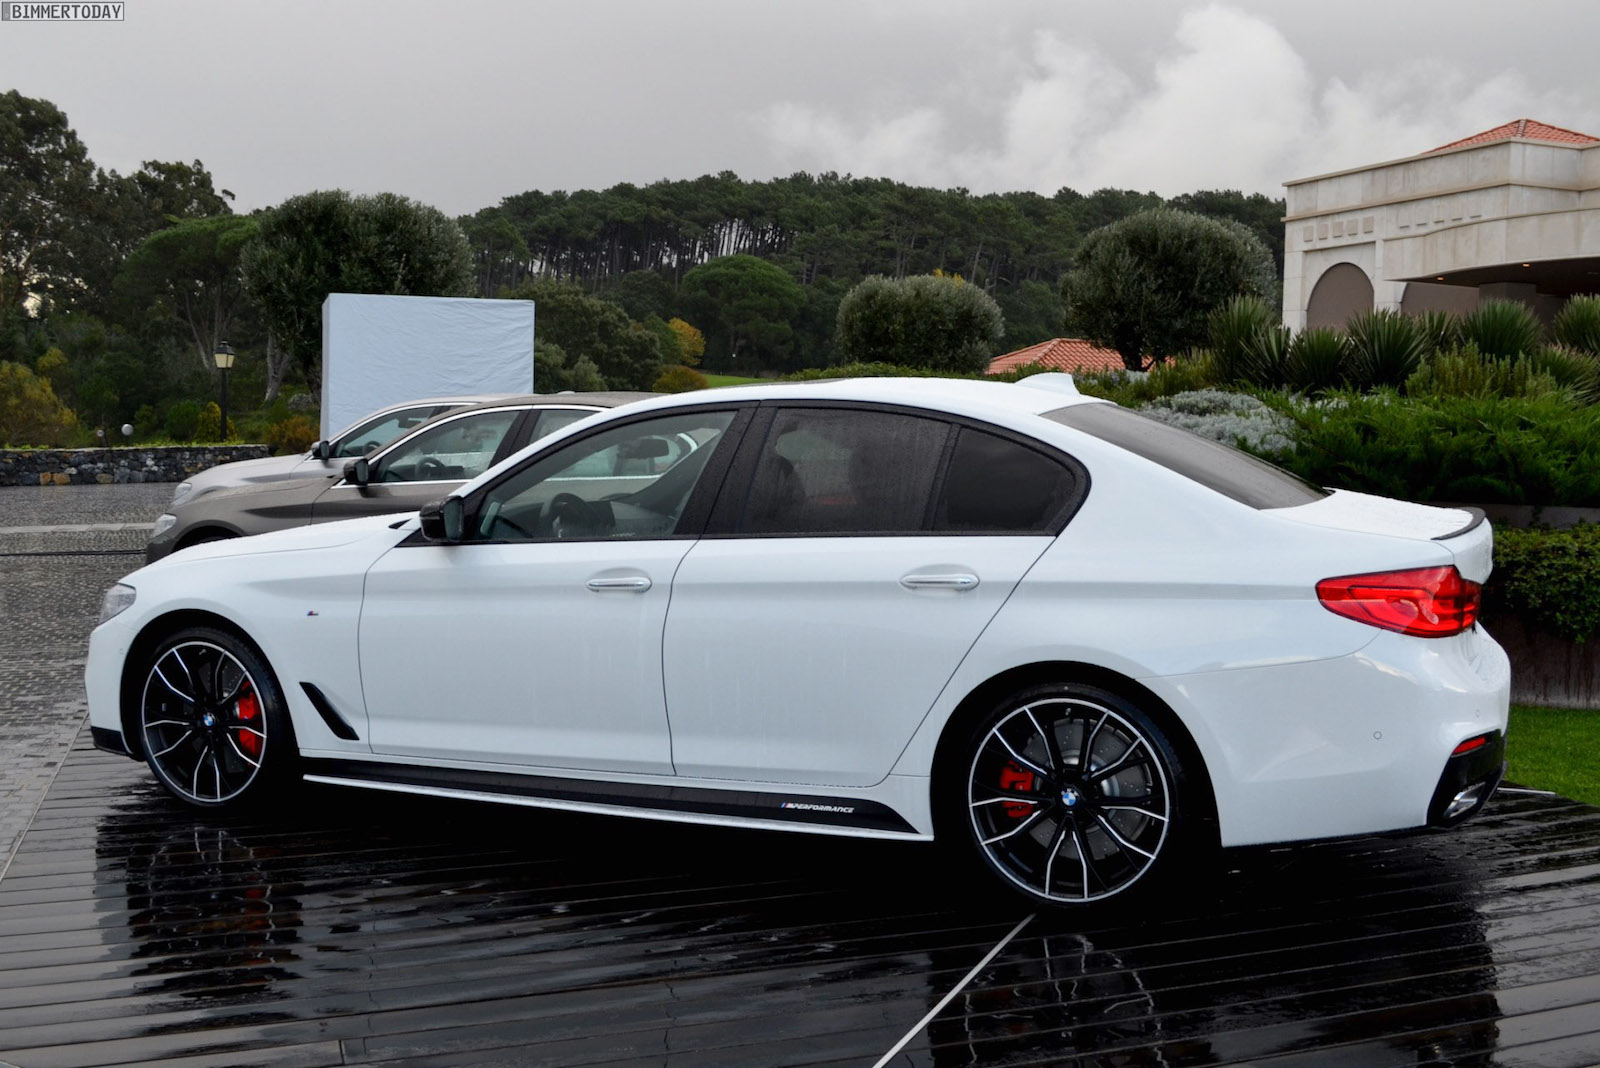 Bmw M Performance Parts Officially Announced For G30 5 Series